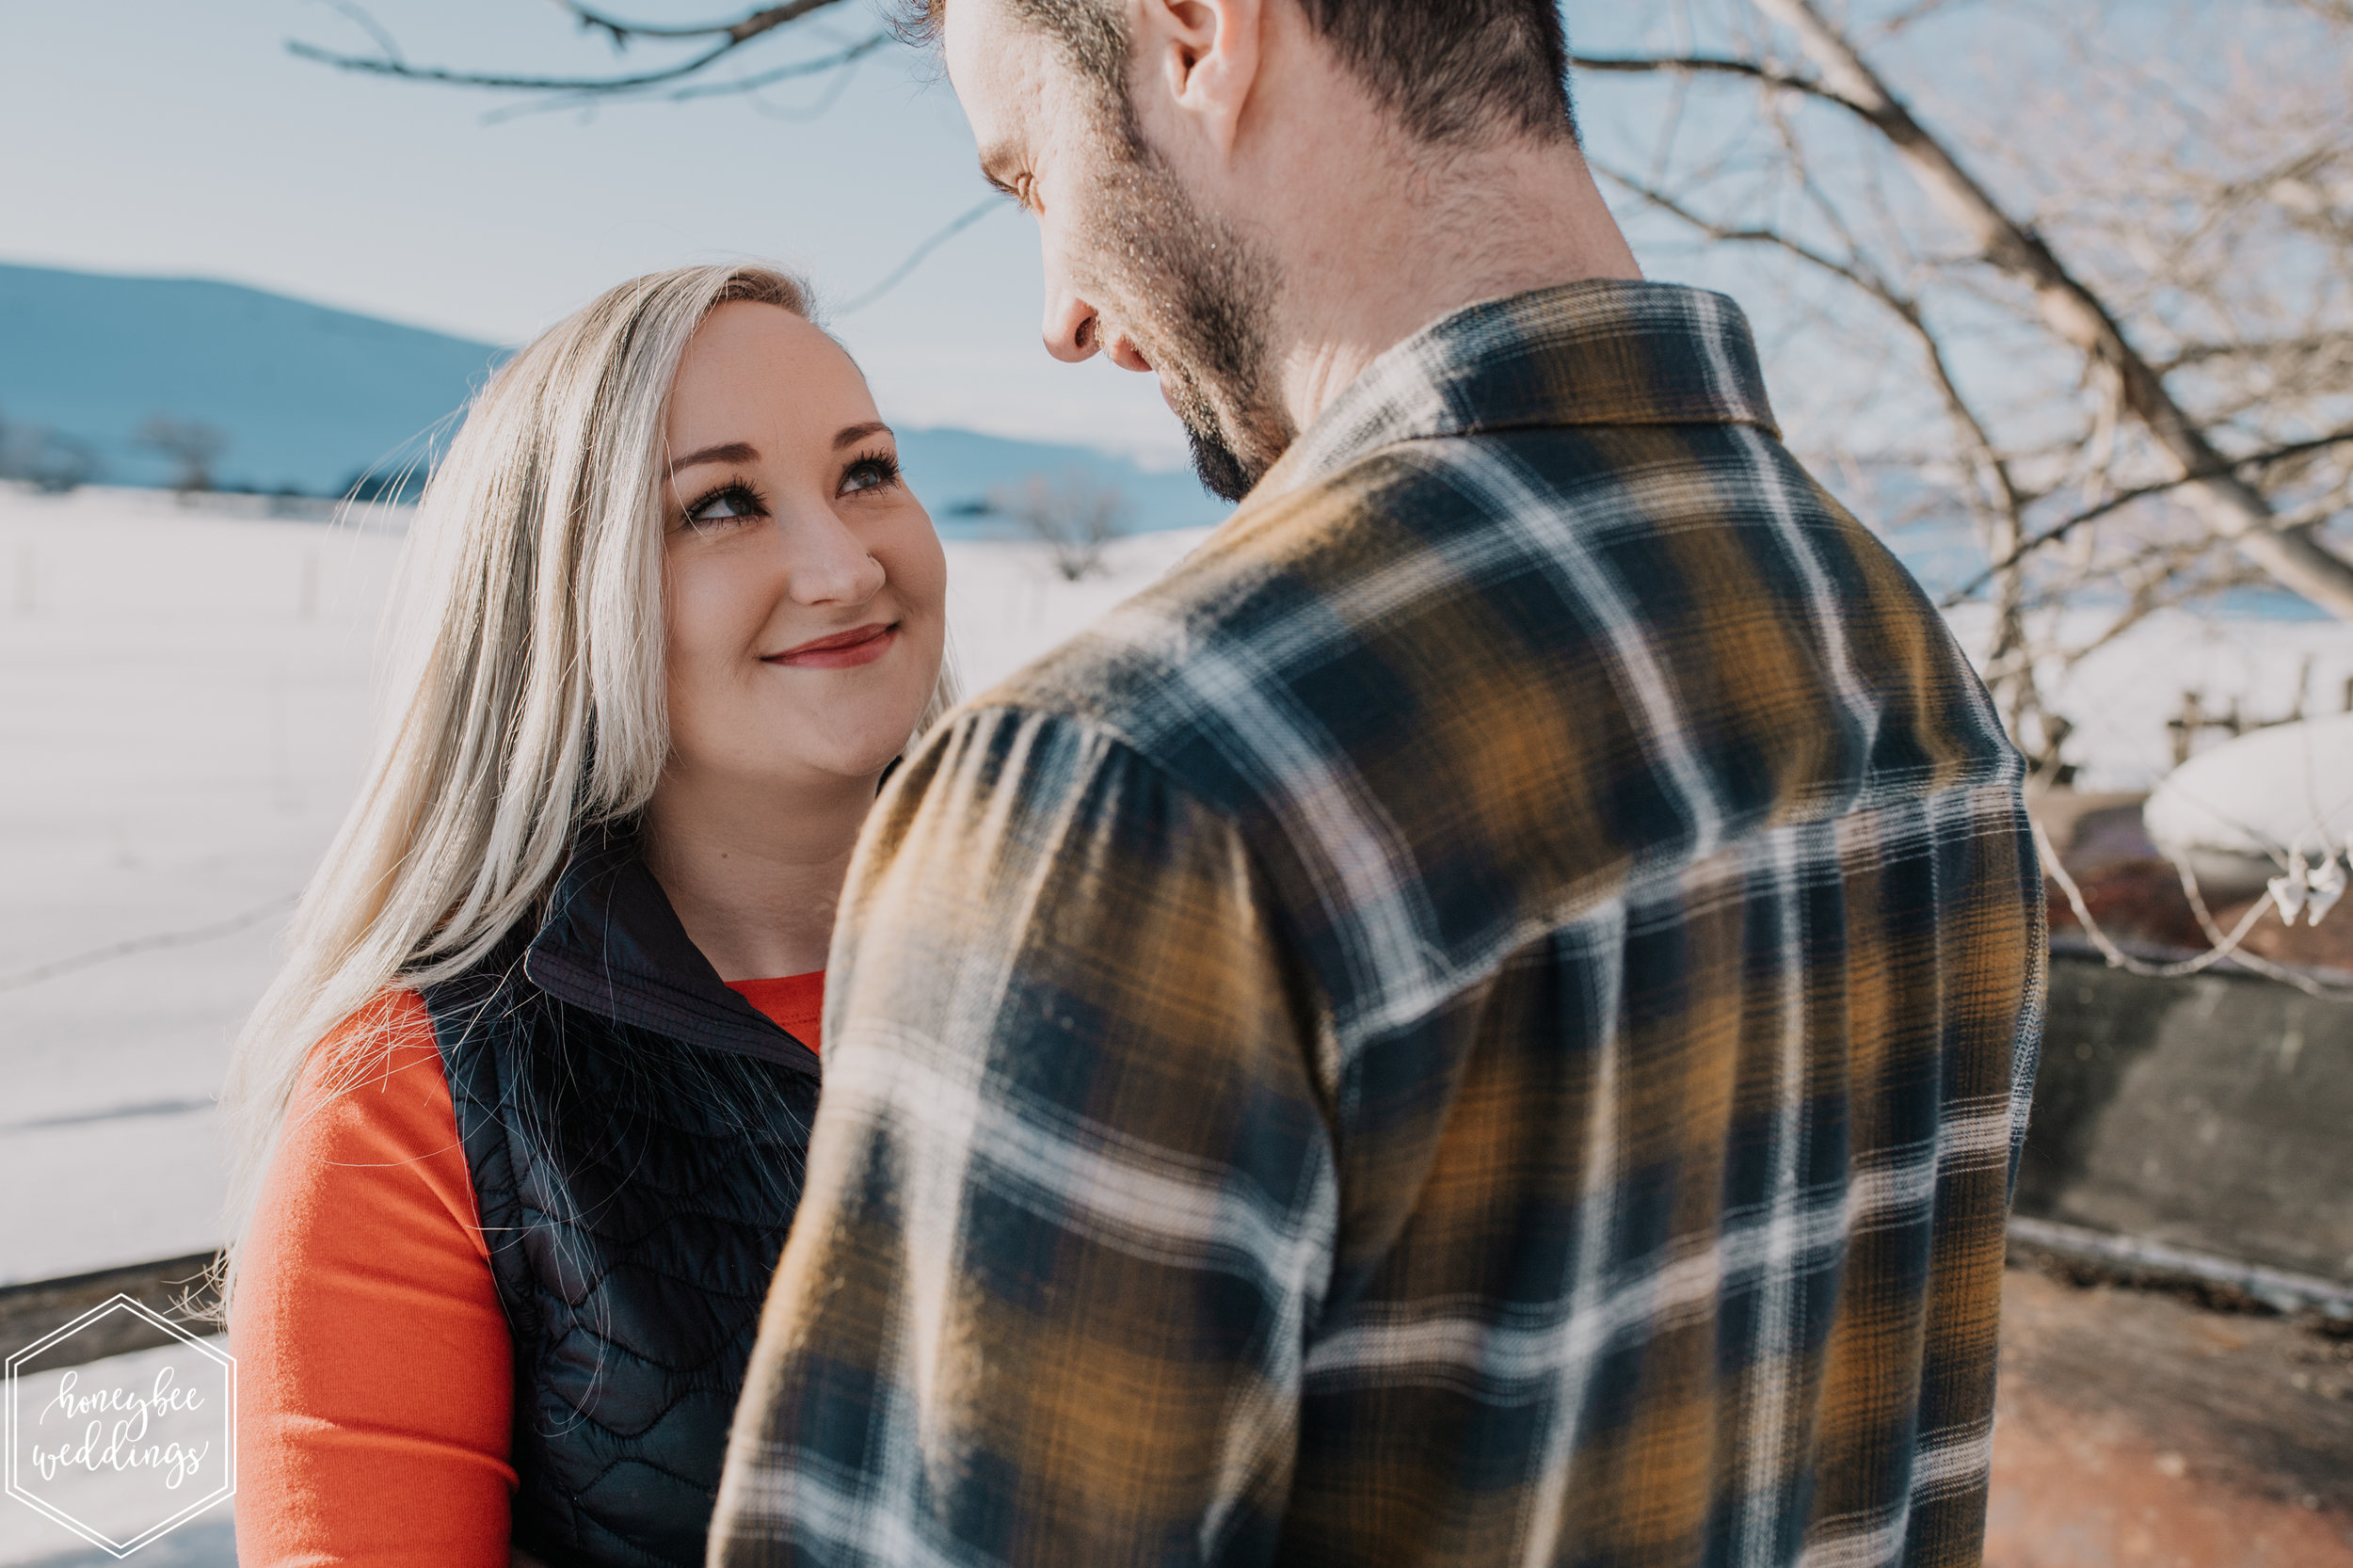 014Montana Wedding Photographer_Winter Engagement_Polson_Jessica & Brian_March 09, 2019-211.jpg